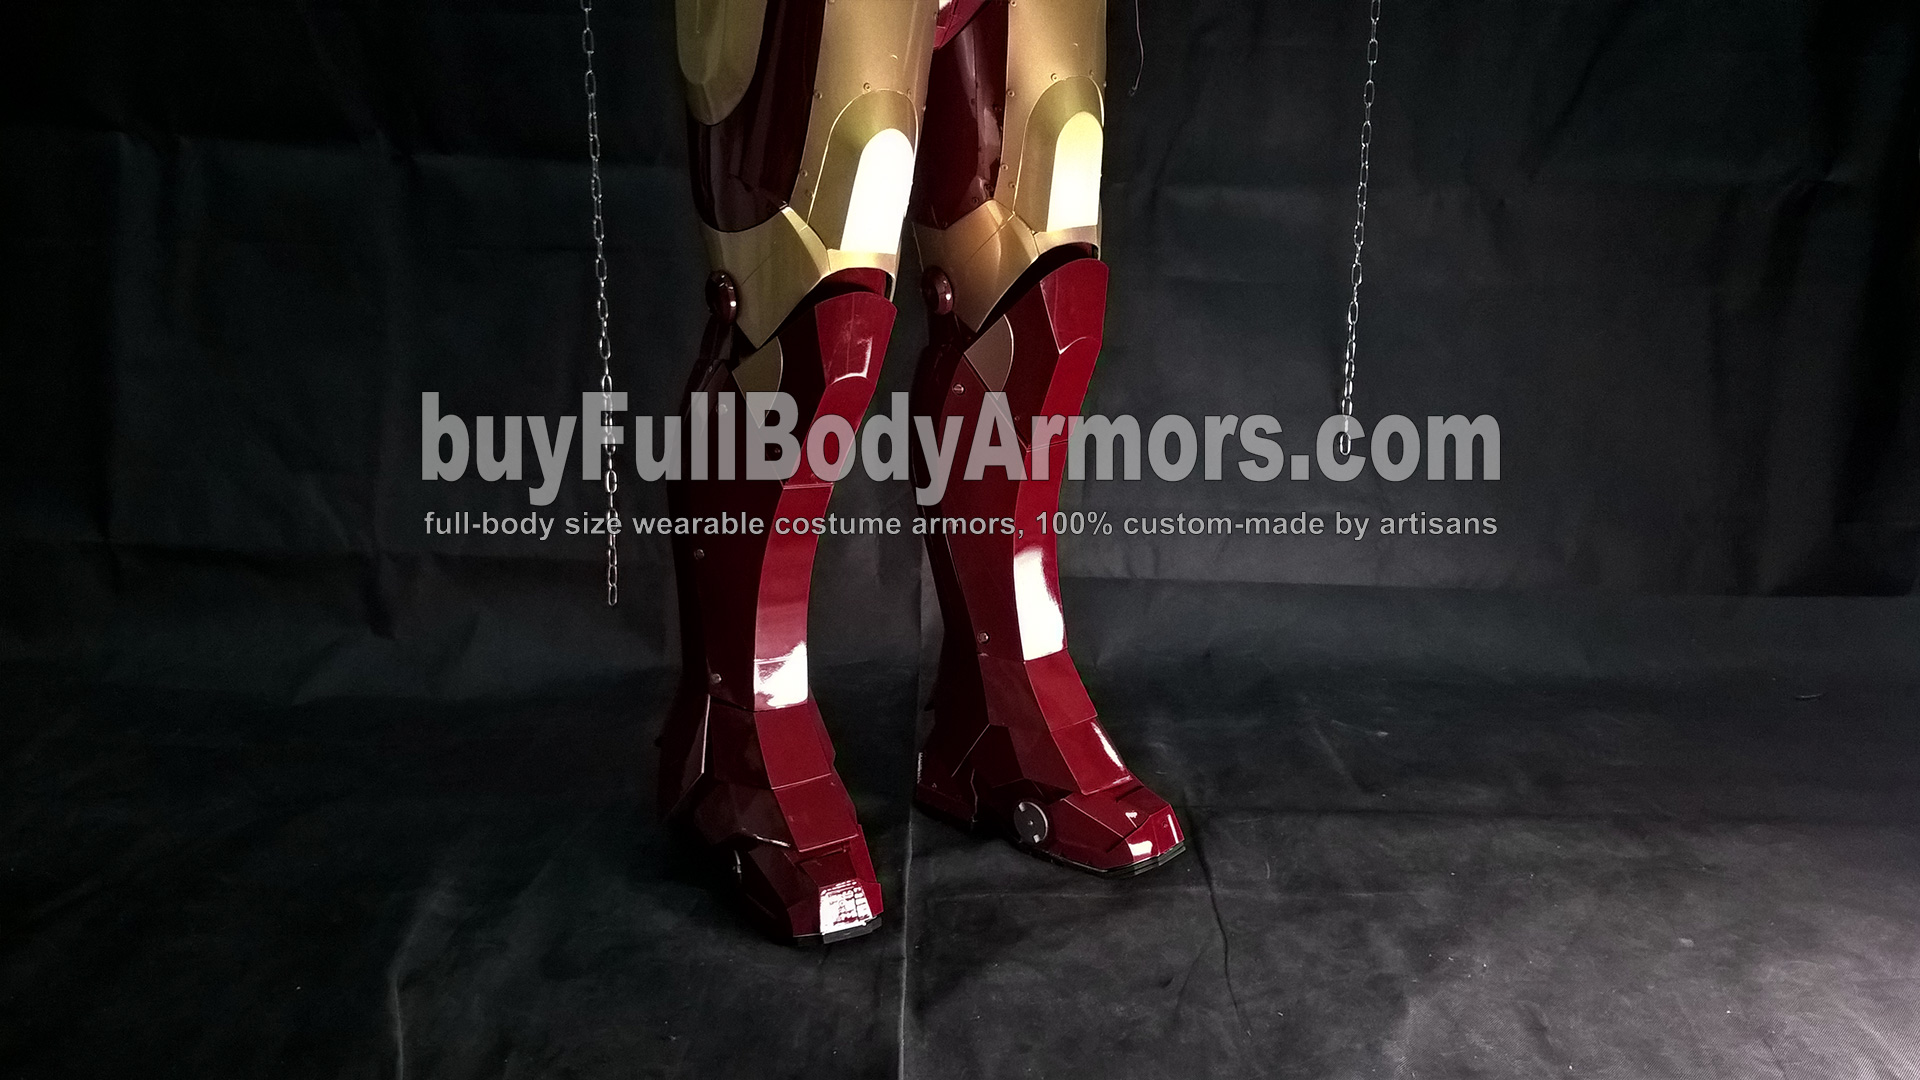 Wearing the Wearable Iron Man Suit Mark 3 III Armor Costume - Leg and Shoe Armors 1